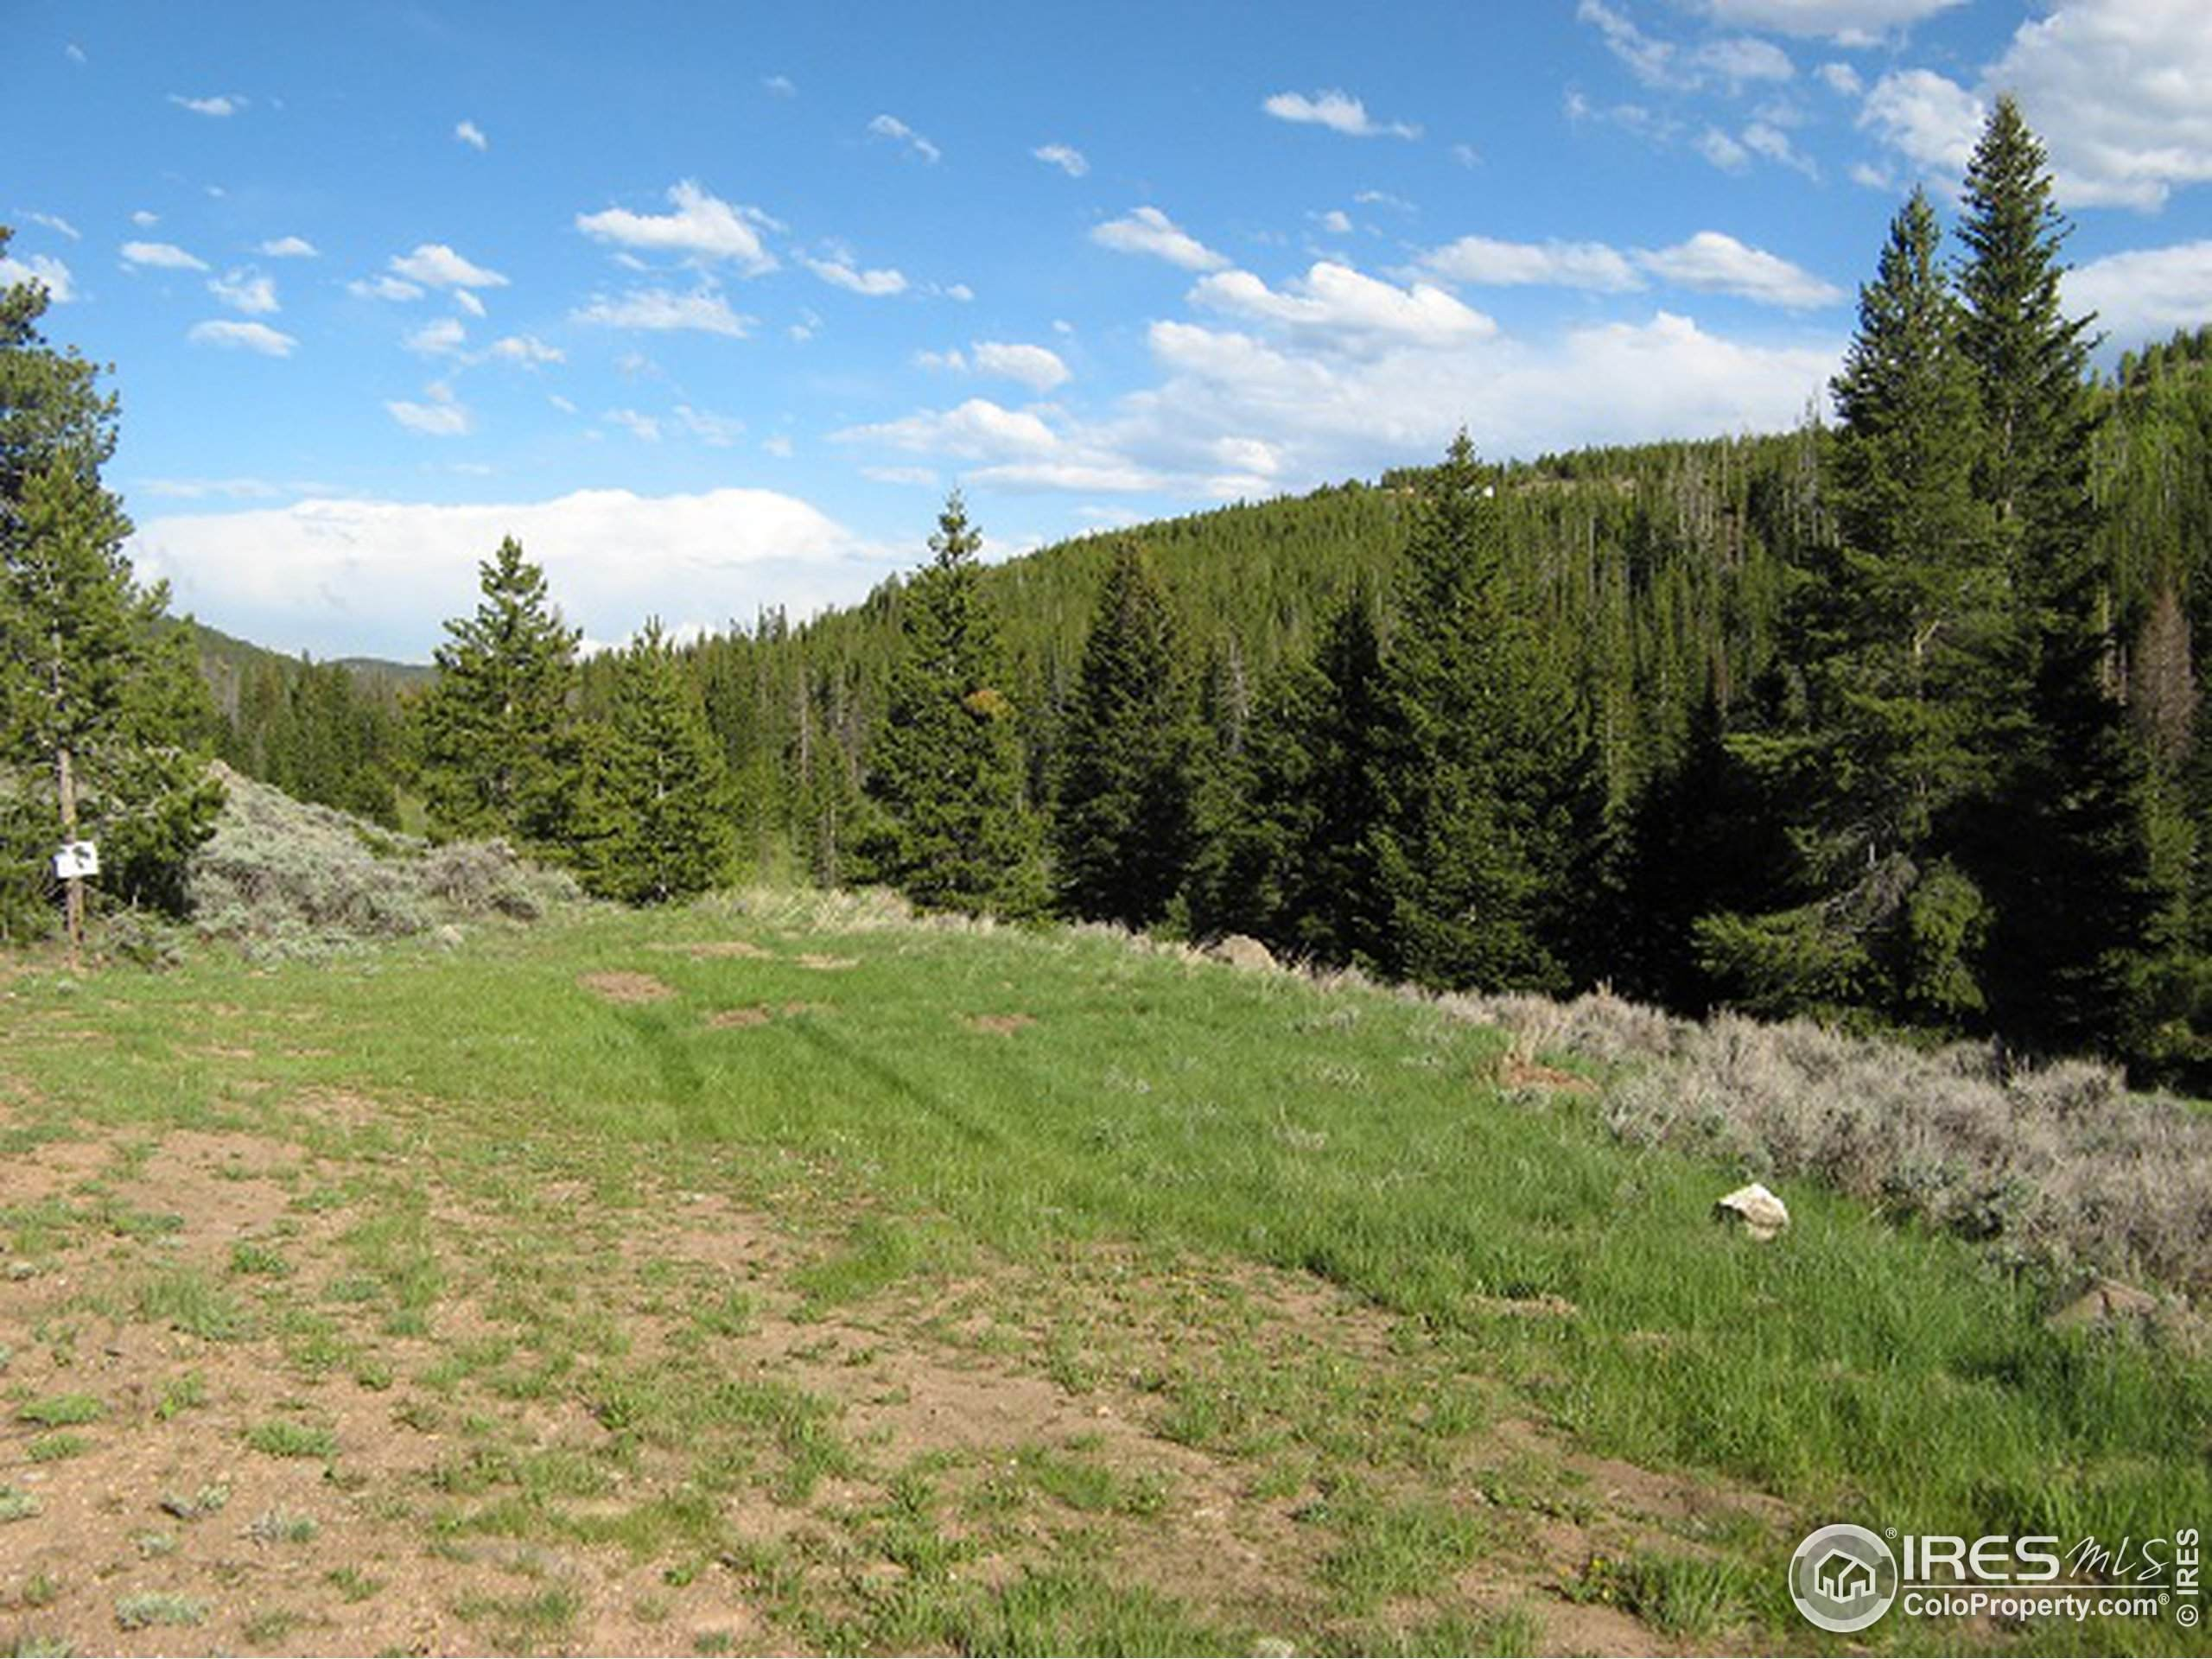 0 Wcr 22, Fort Lupton, CO 80621 (MLS #923999) :: 8z Real Estate